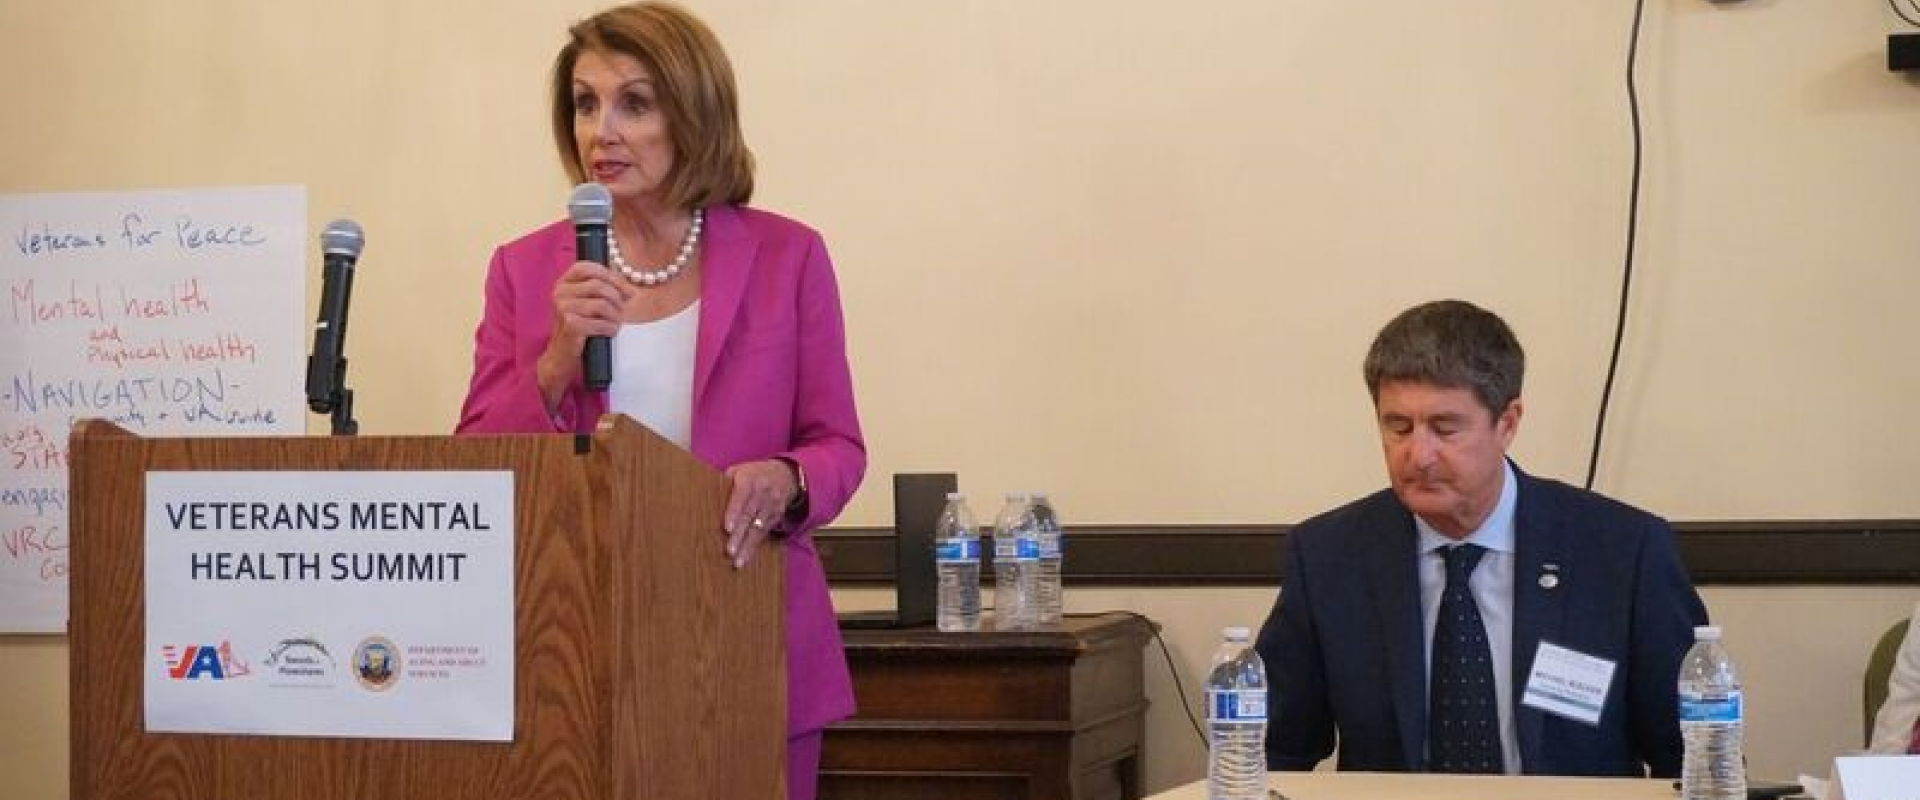 Congresswoman Pelosi joins the 6th Annual Veterans Mental Health Summit with Swords to Plowshare Executive Director Michael Blecker, Ft. Miley leadership, local veterans, and veterans service organizations in the Veterans War Memorial Building to discuss